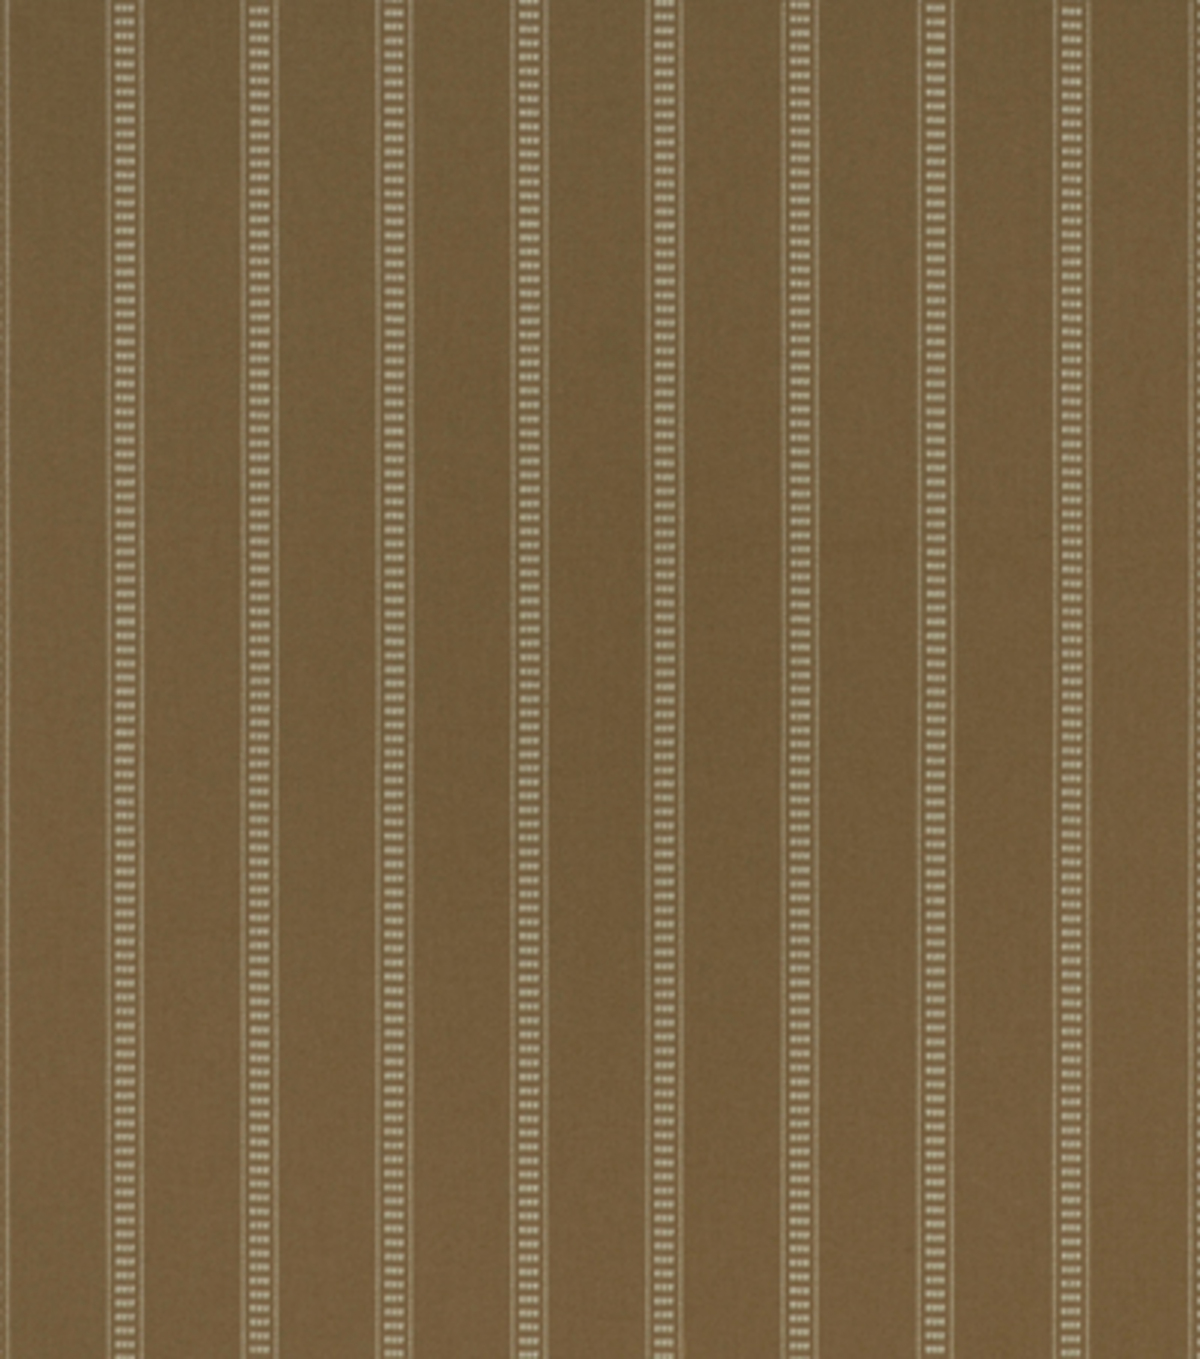 Home Decor 8\u0022x8\u0022 Fabric Swatch-Covington Skipper 116 Moonstone